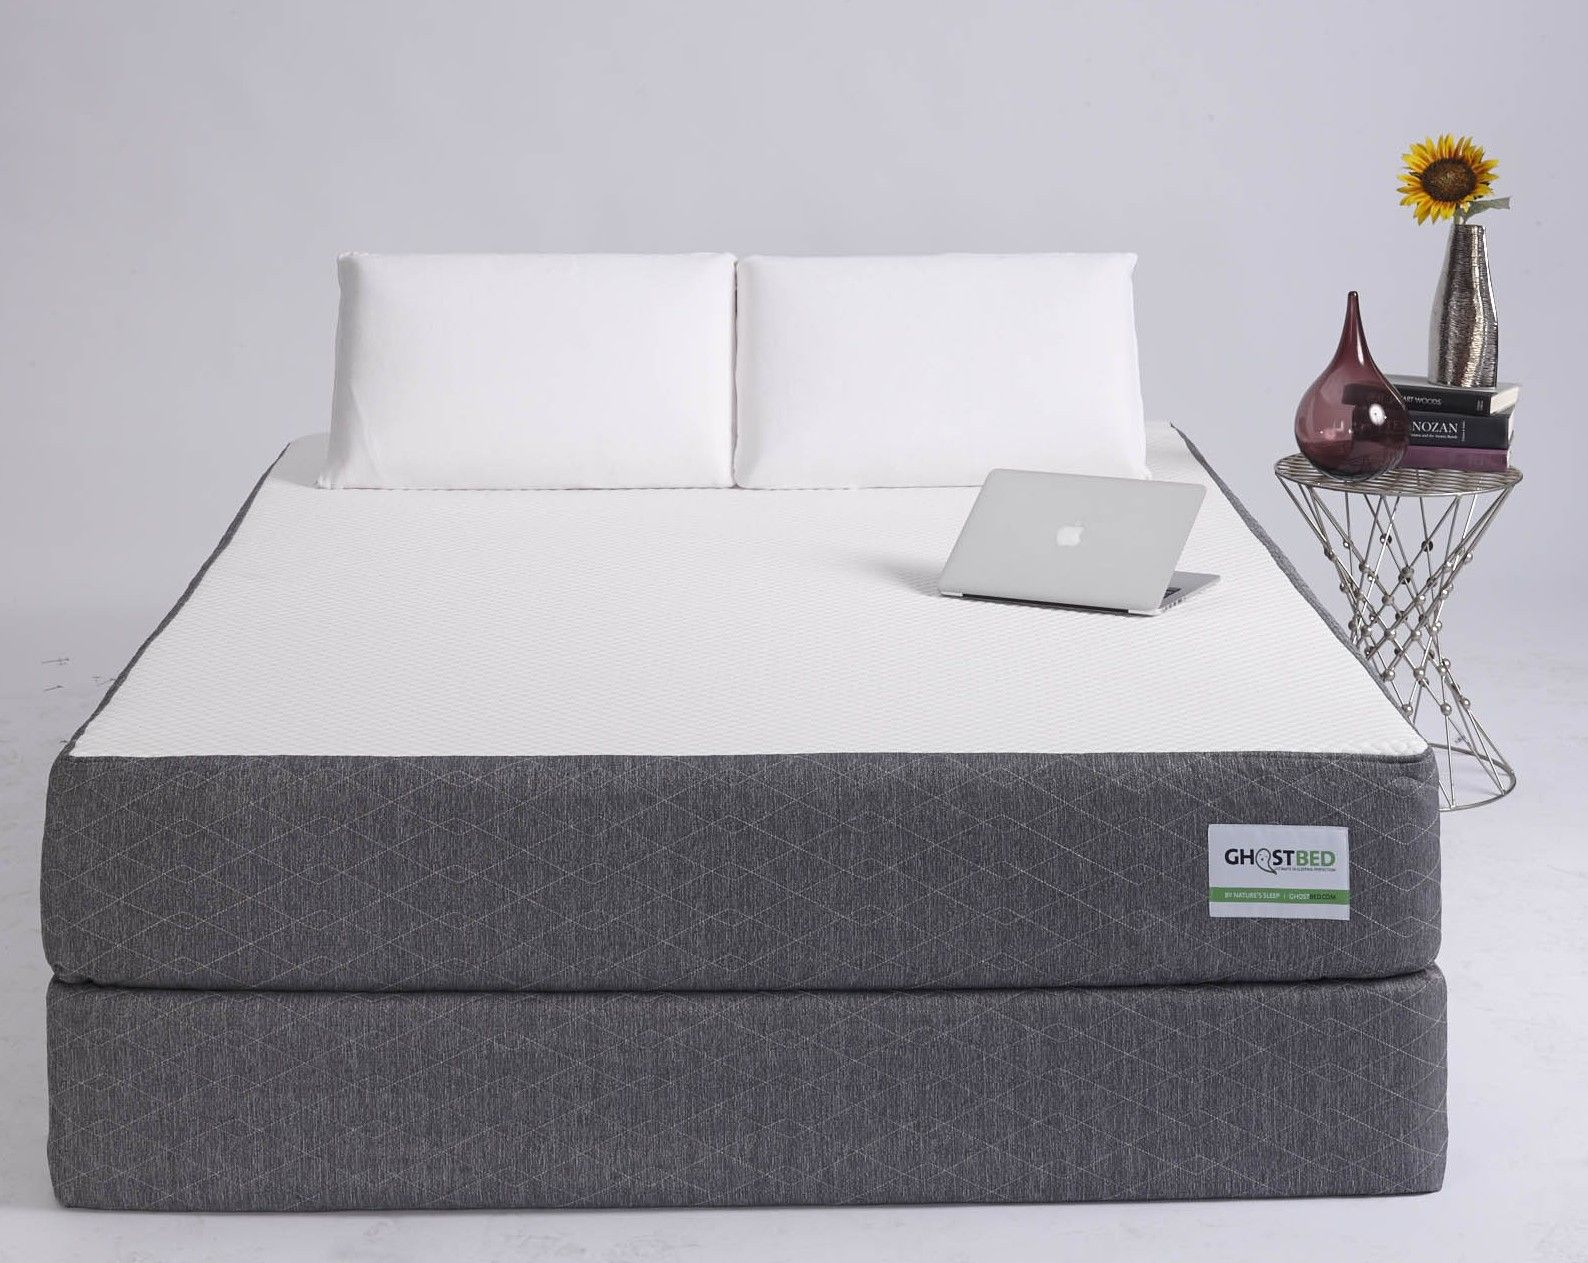 Ghostbed Mattress By Nature S Sleep Review Christmas